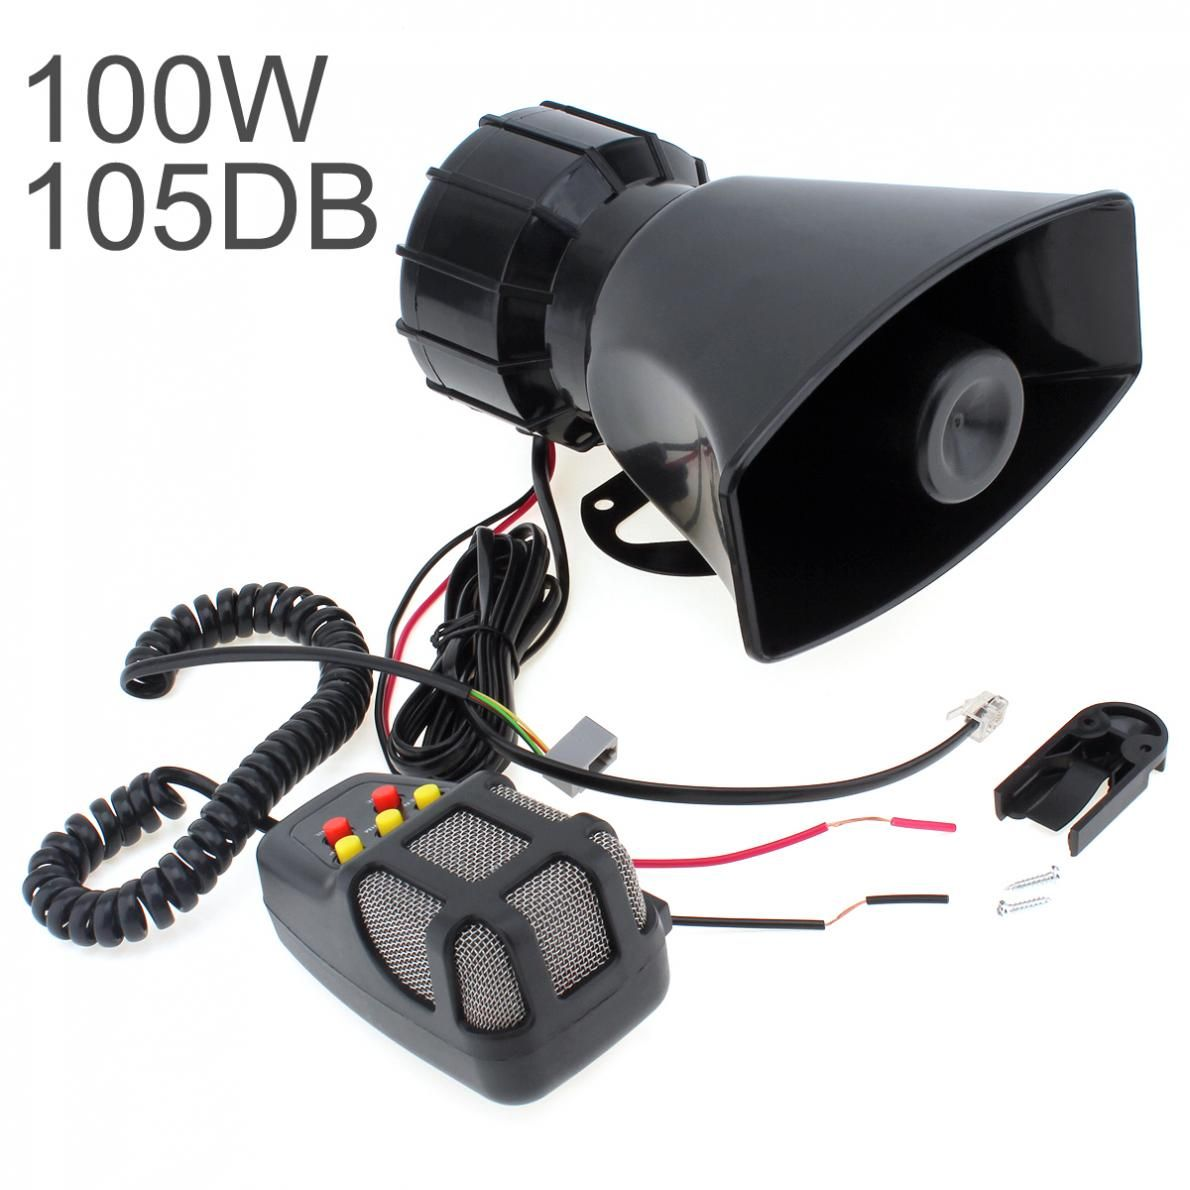 DC 12V 100W Motorcycle Car Auto Vehicle Truck 5 Sound Tone Loud Horn Siren Police Firemen Ambulance Warning Alarm Loudspeaker